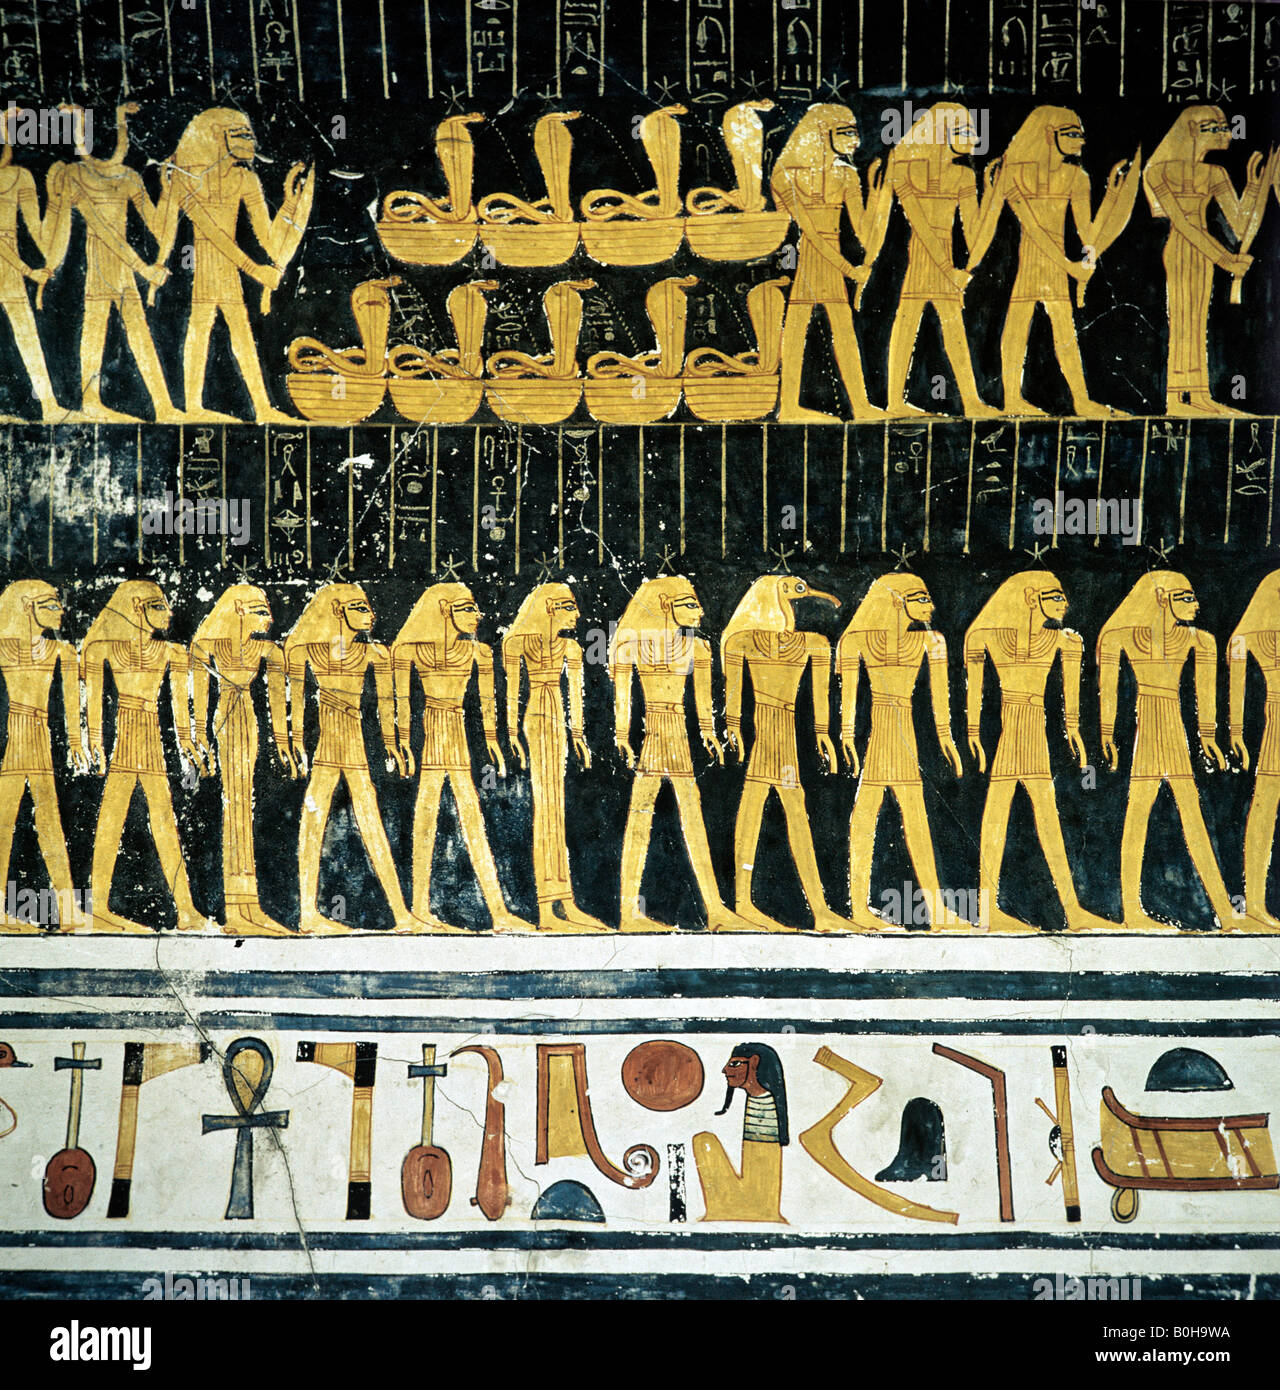 Hieroglyphs, grave relief, mural art depicting Egyptian gods, Luxor, Thebes, Egypt - Stock Image